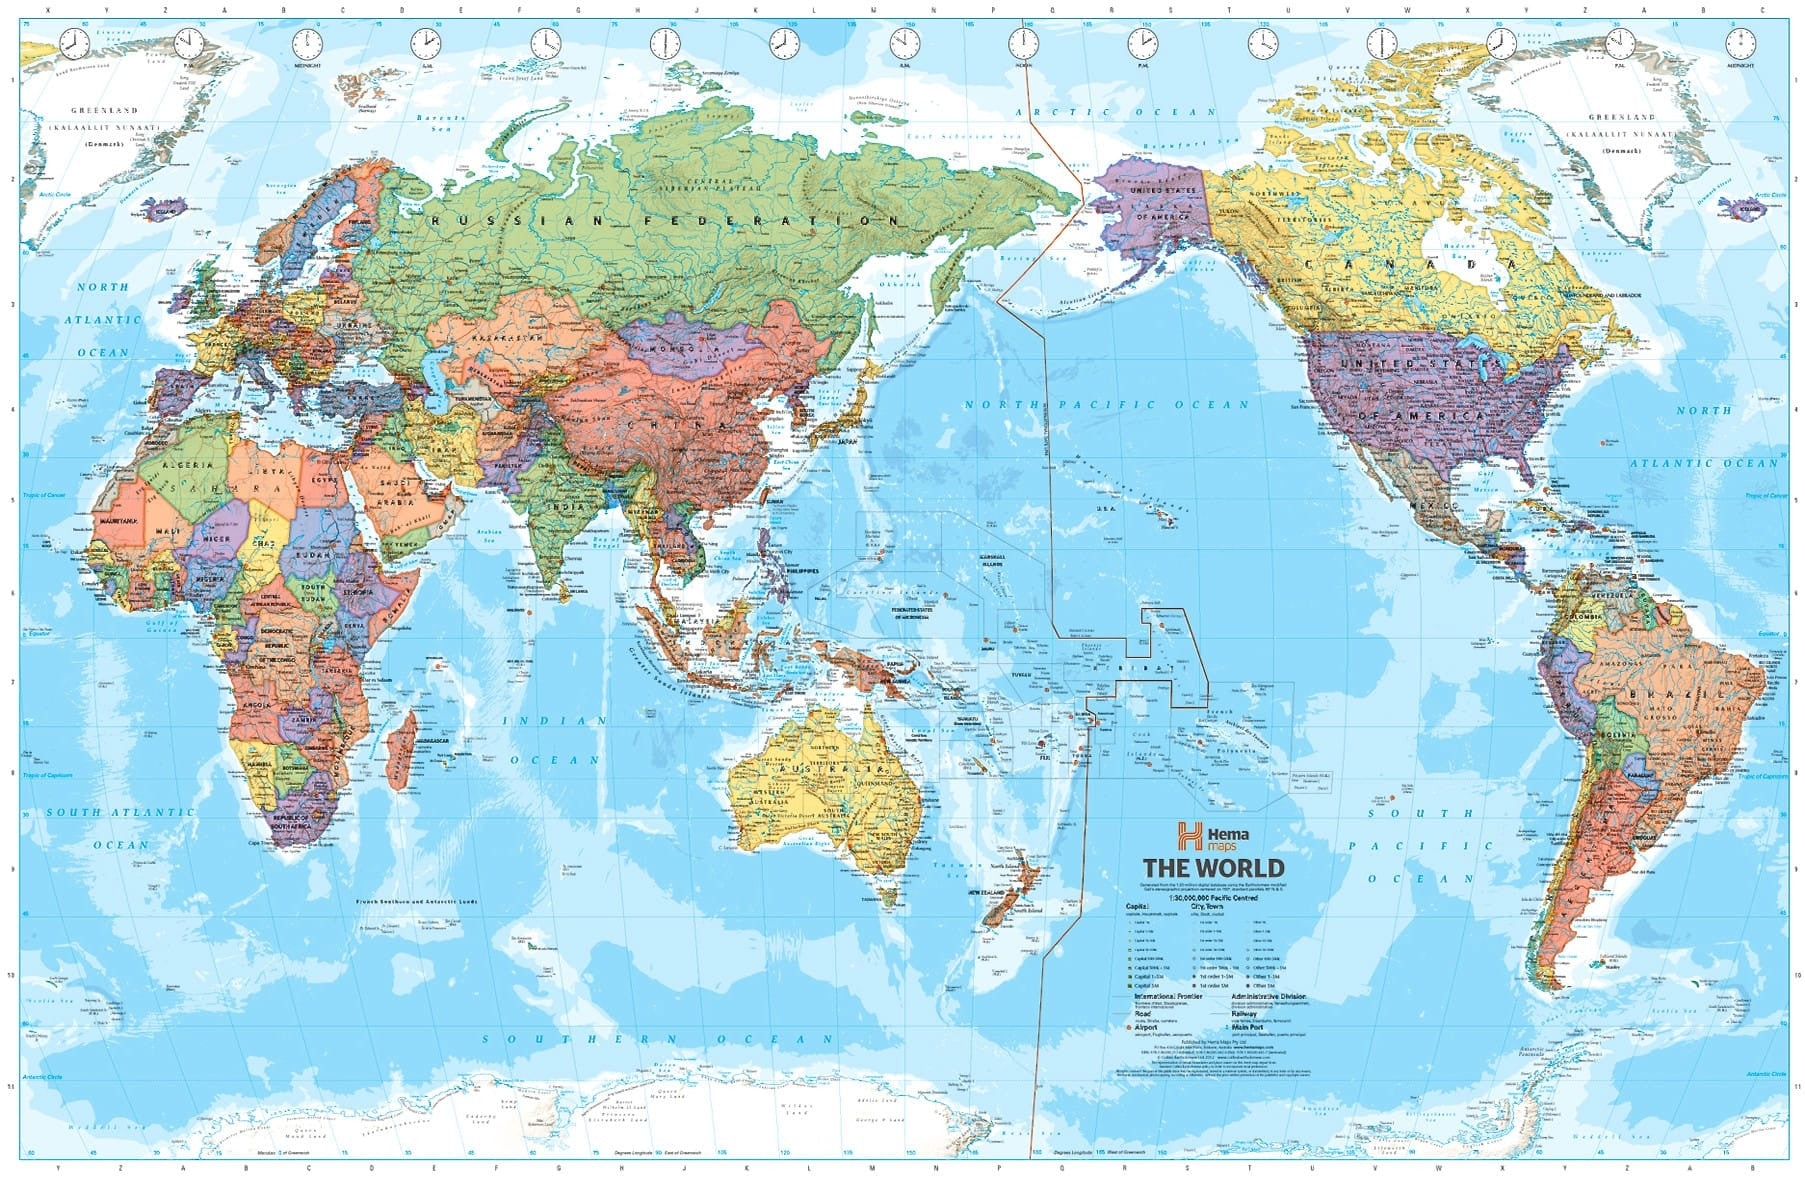 World political map pacific centred hema buy hema world map world hema mega map pacific centred 2320 x 1460mm paper gumiabroncs Images